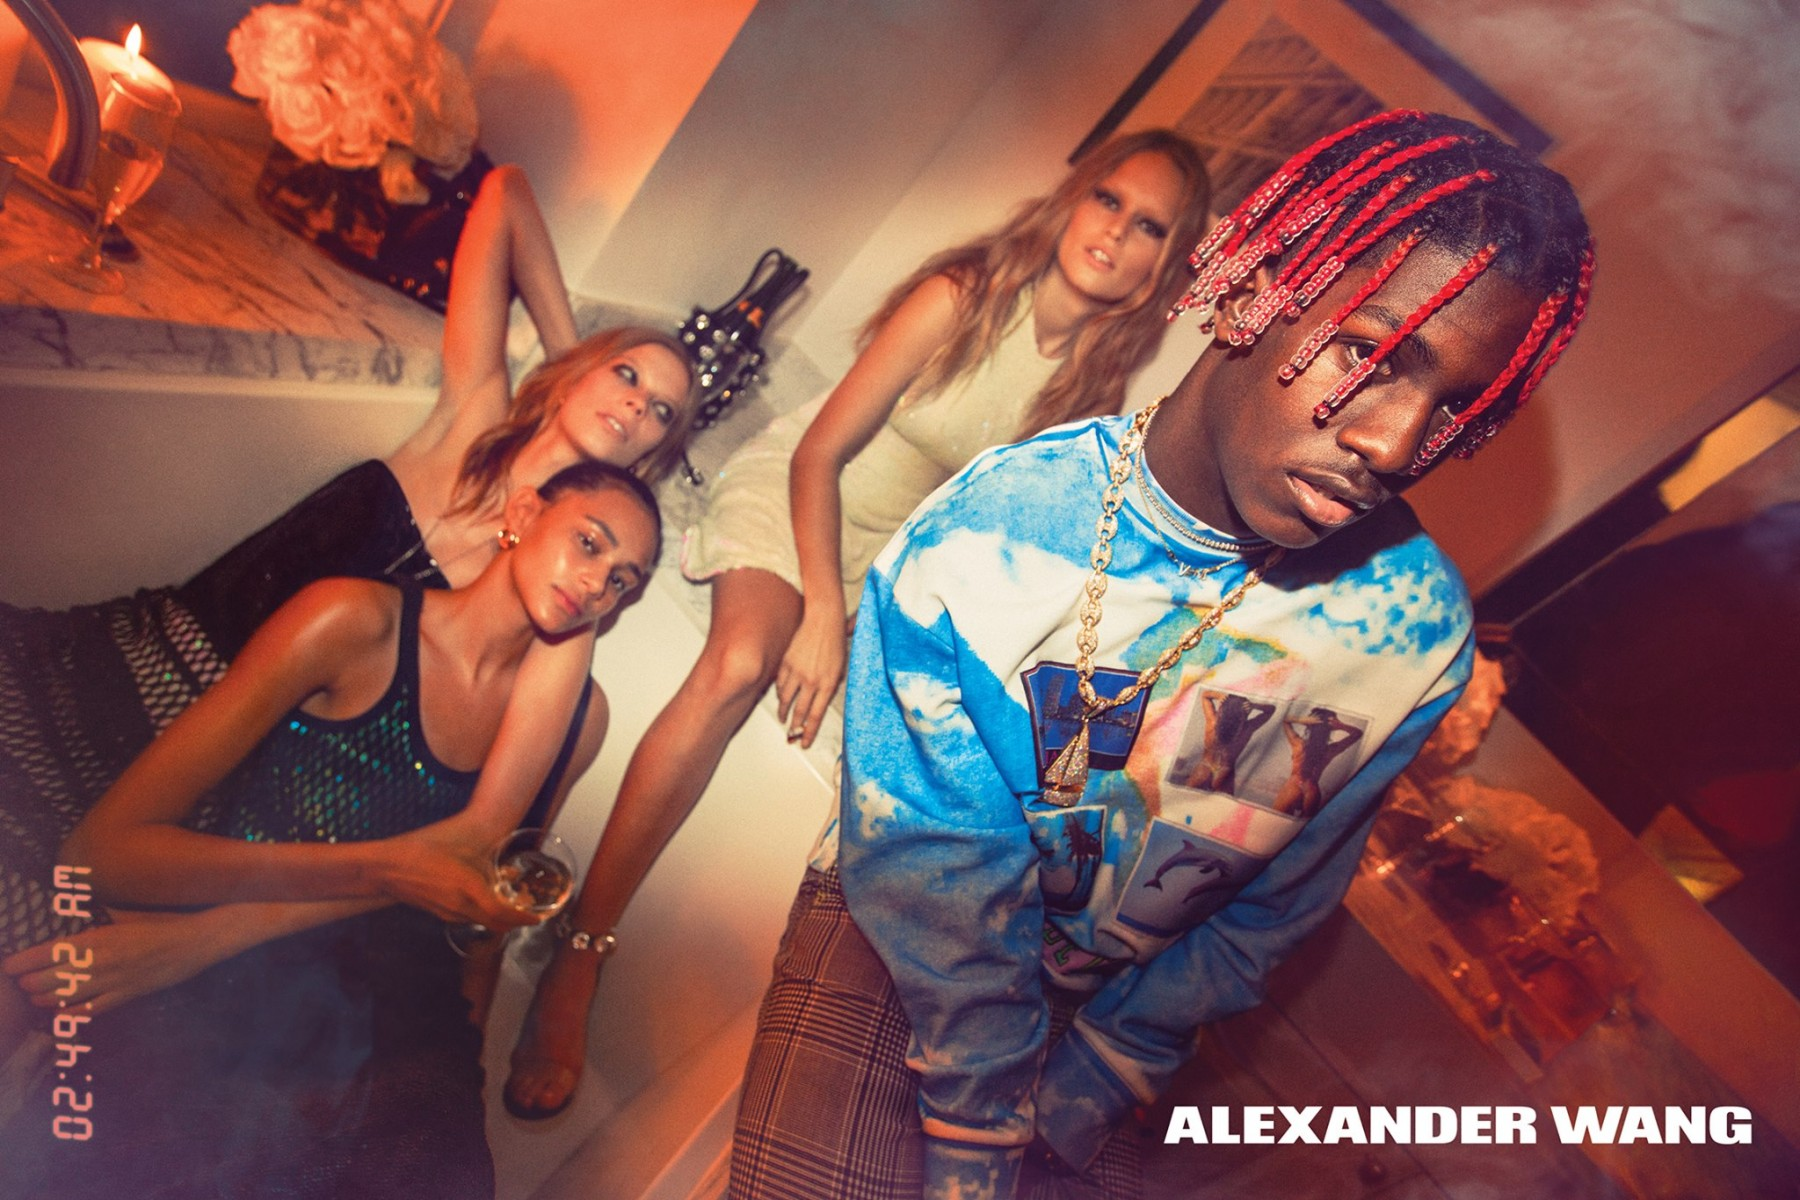 Lil Yachty For Alexander Wang Spring/Summer 2017 Ad Campaign